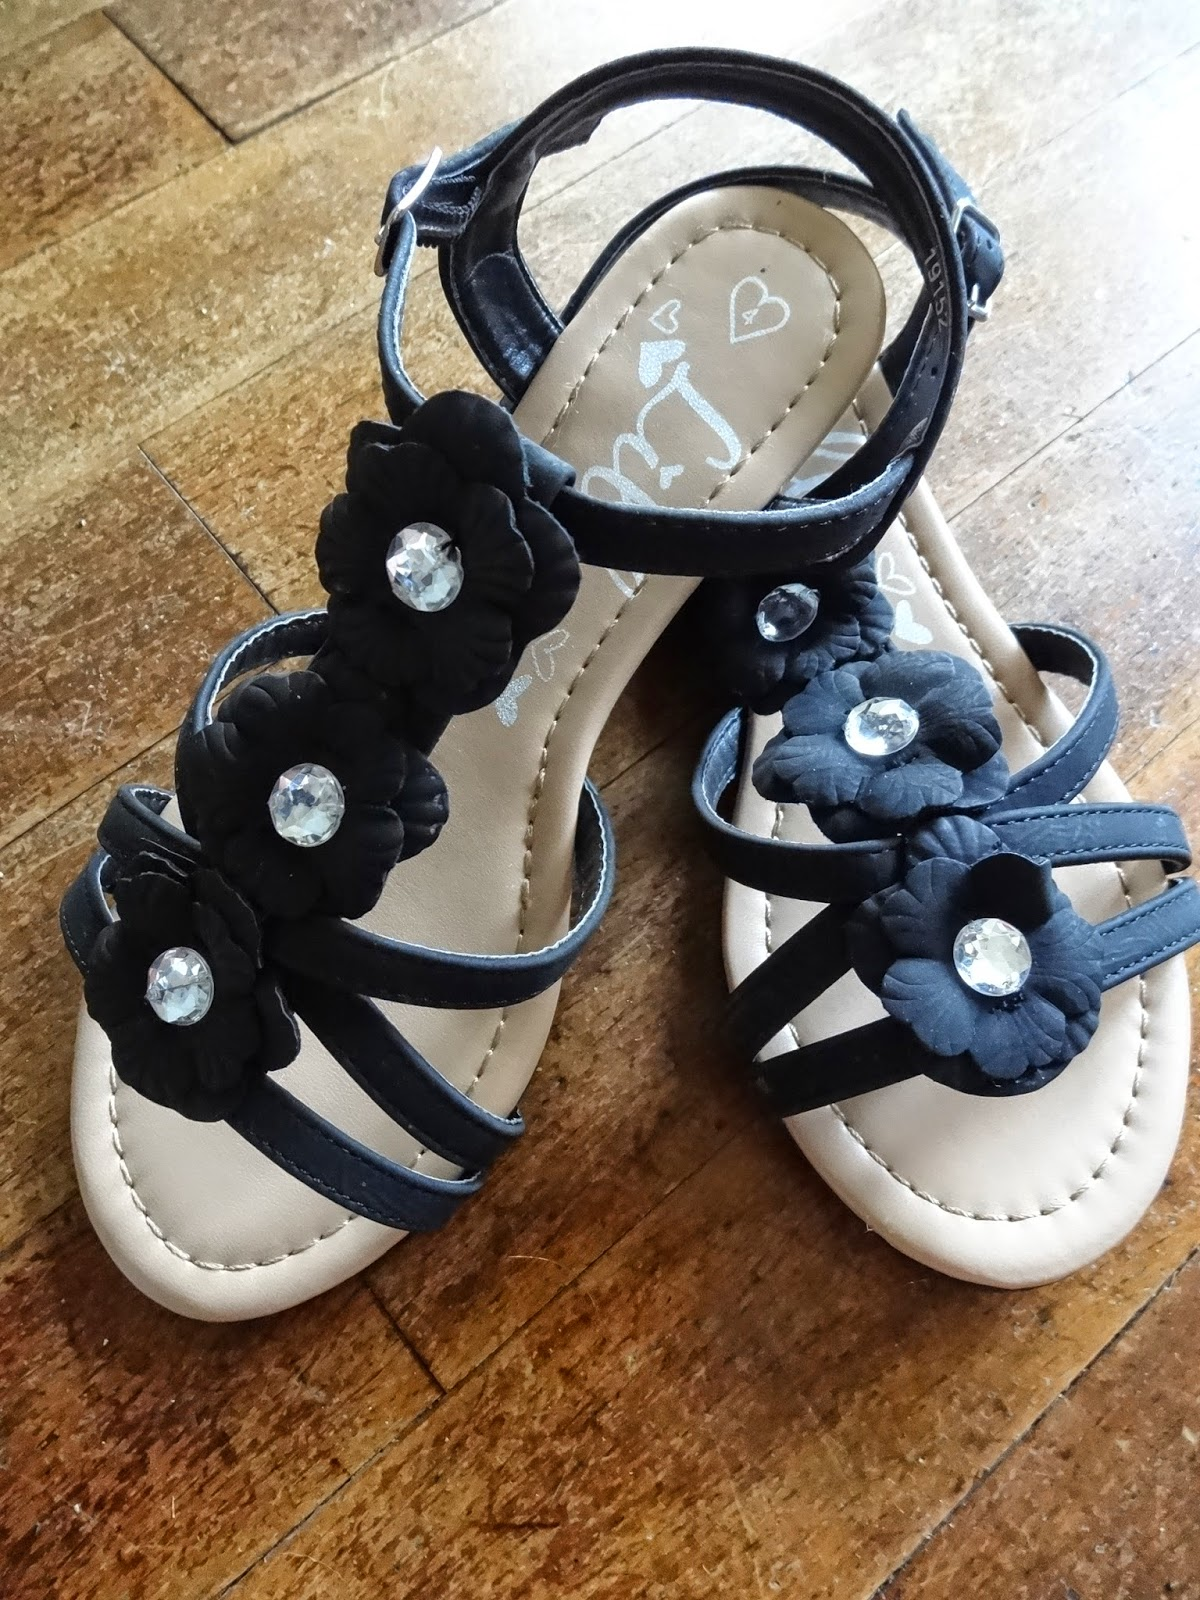 Shoes zone sandals - These Are The Lilley Strappy Wedge Flower Sandals In Black And I Love Them I Was Instantly Impressed With How Good Quality The Sandals Look